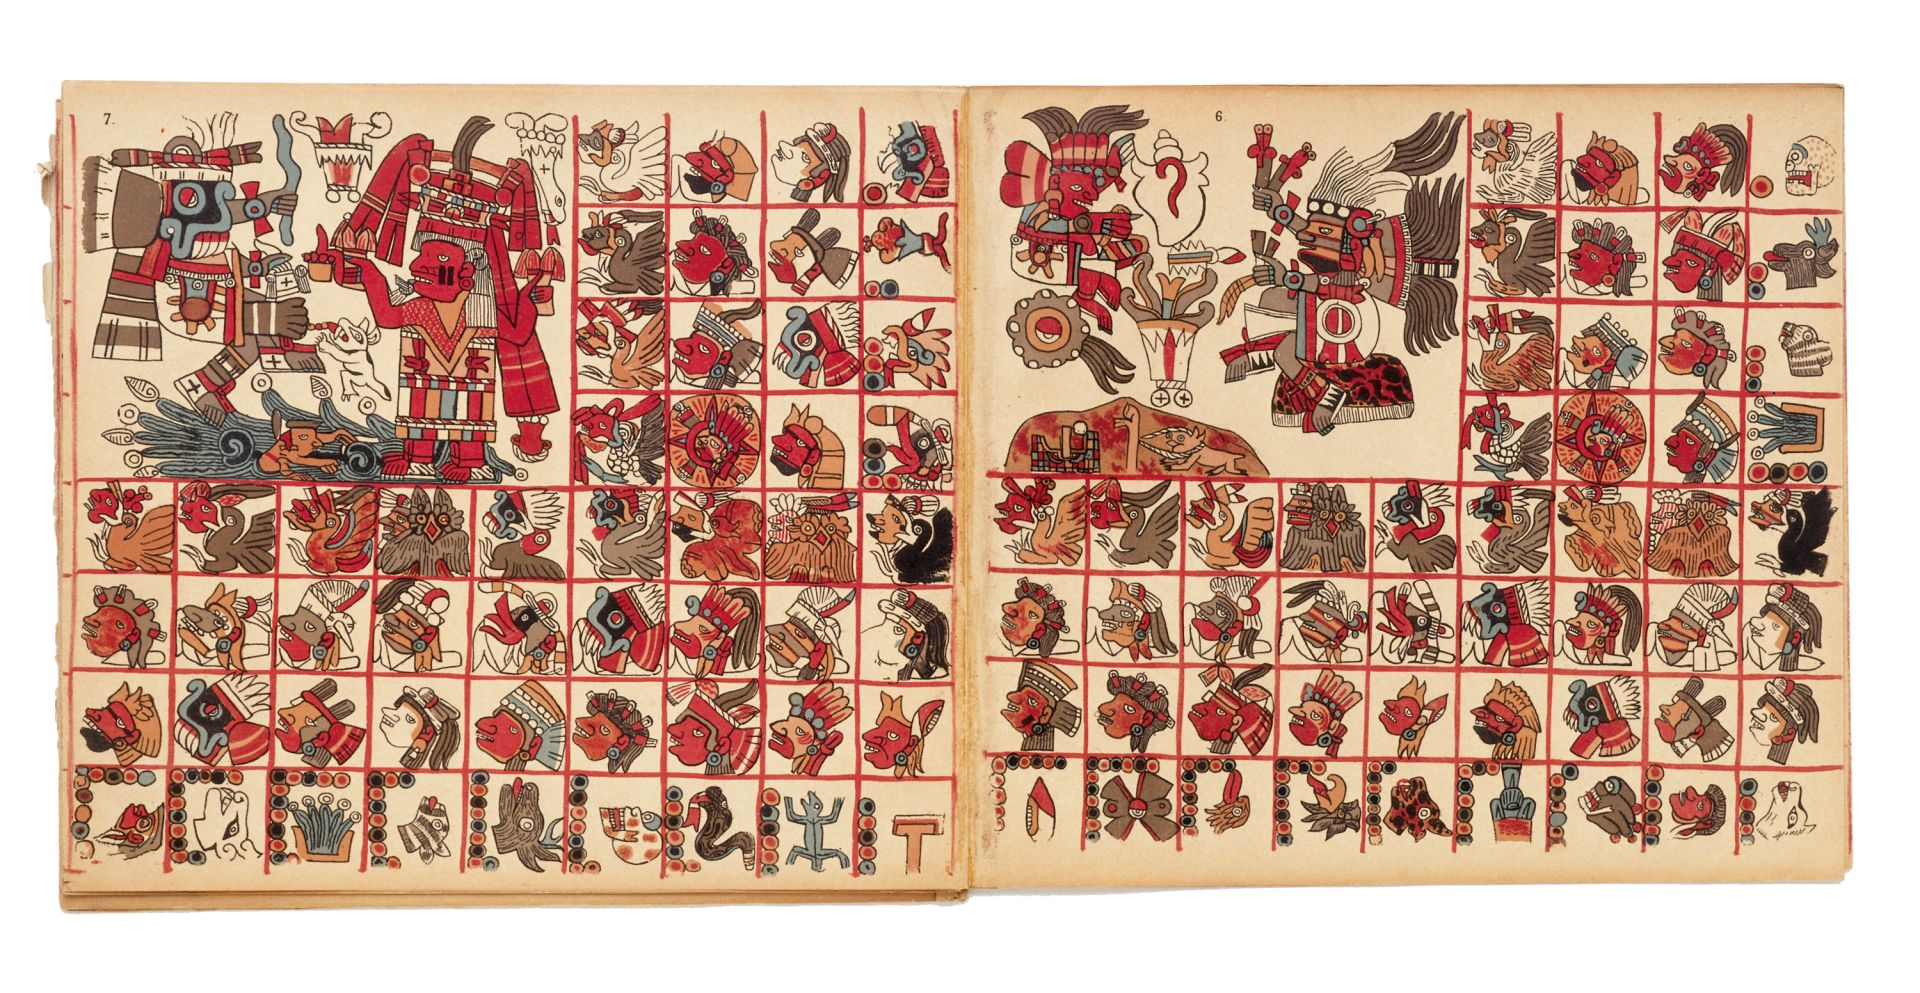 aztecs writing system One might find that from the previous examples the aztec writing system is complicated and not 10/10/14 ancient scripts: aztec.